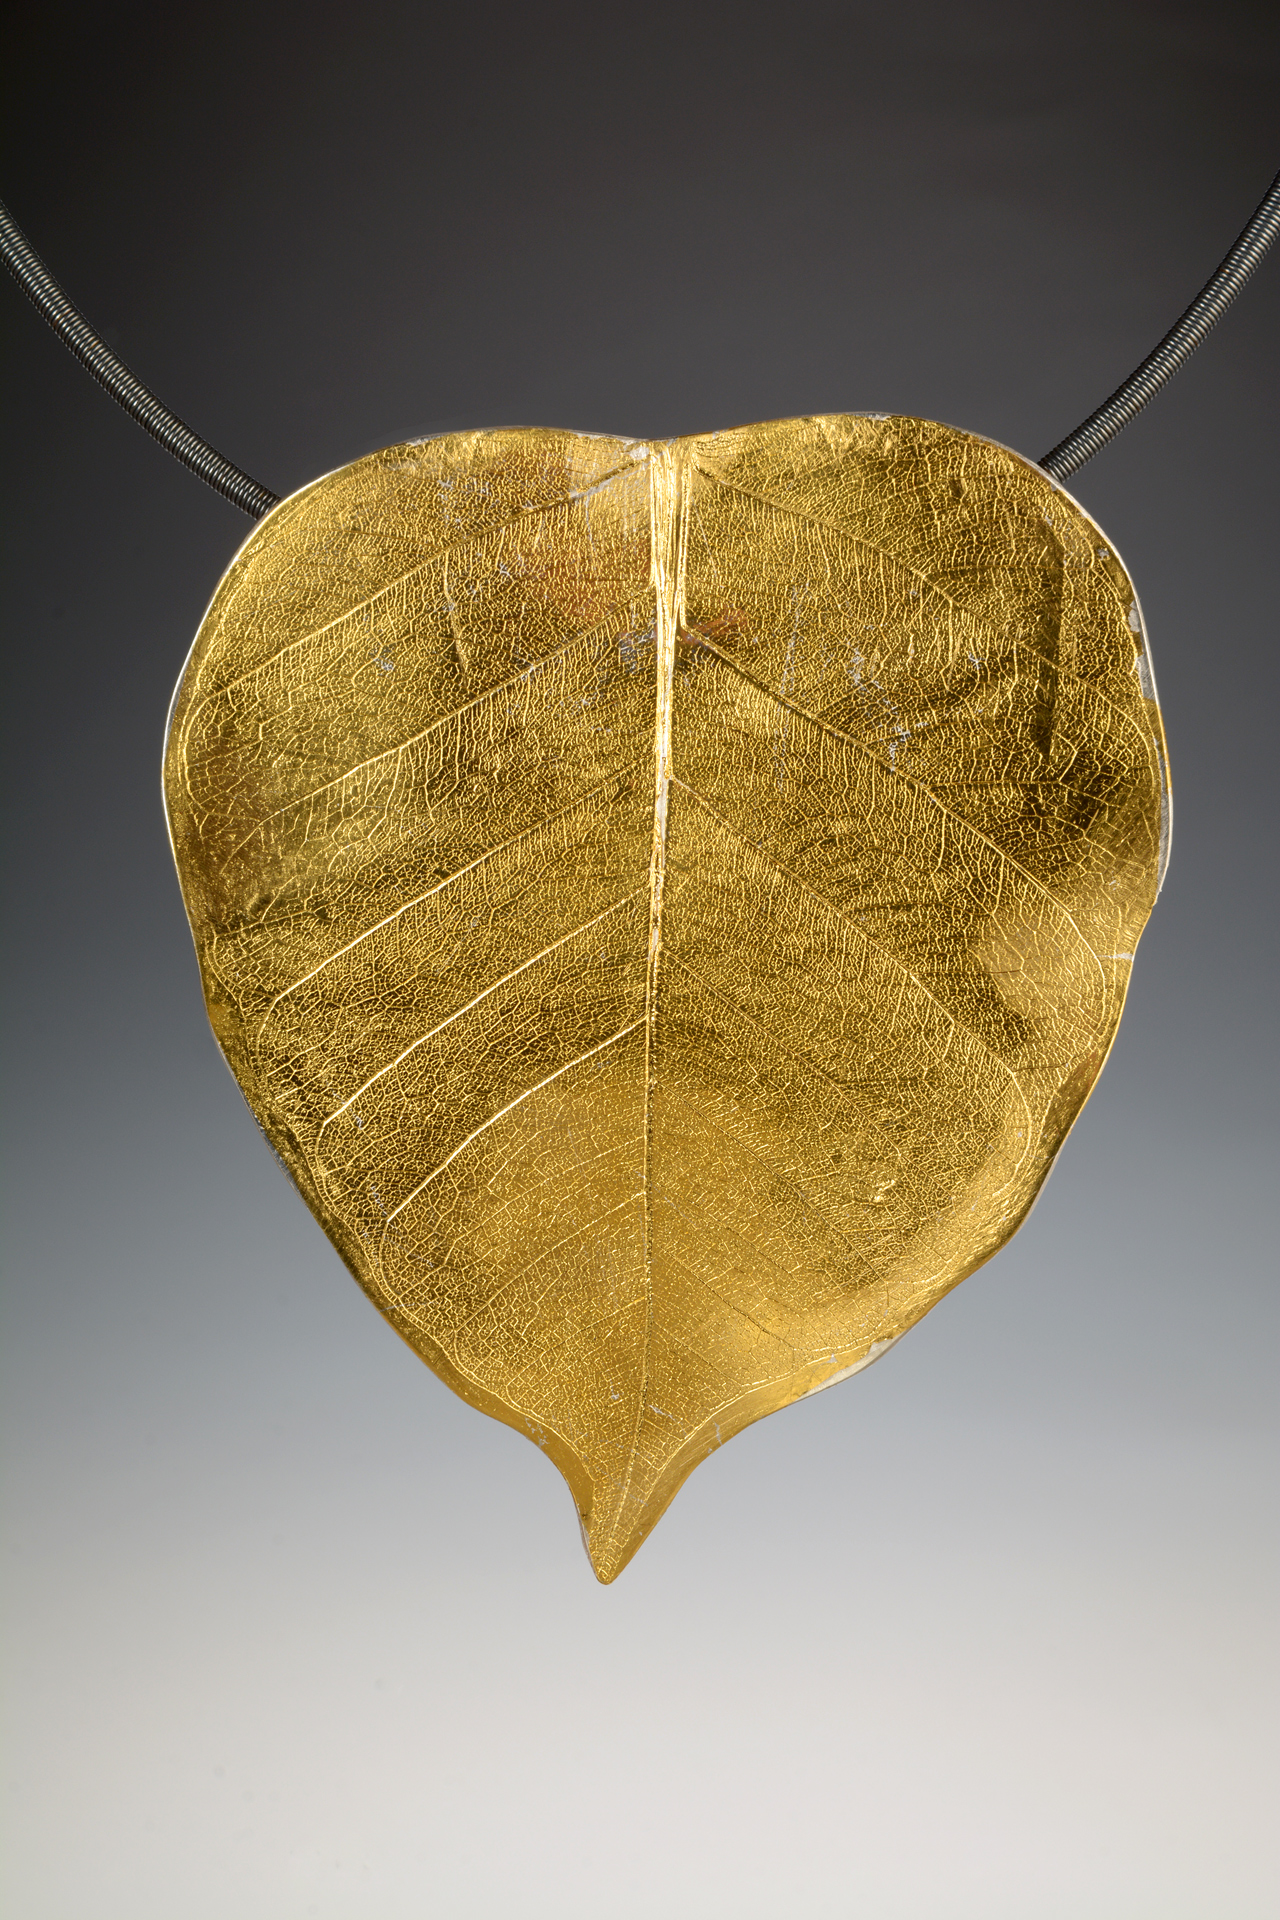 Sterling silver leaf pendant with 24k gold.